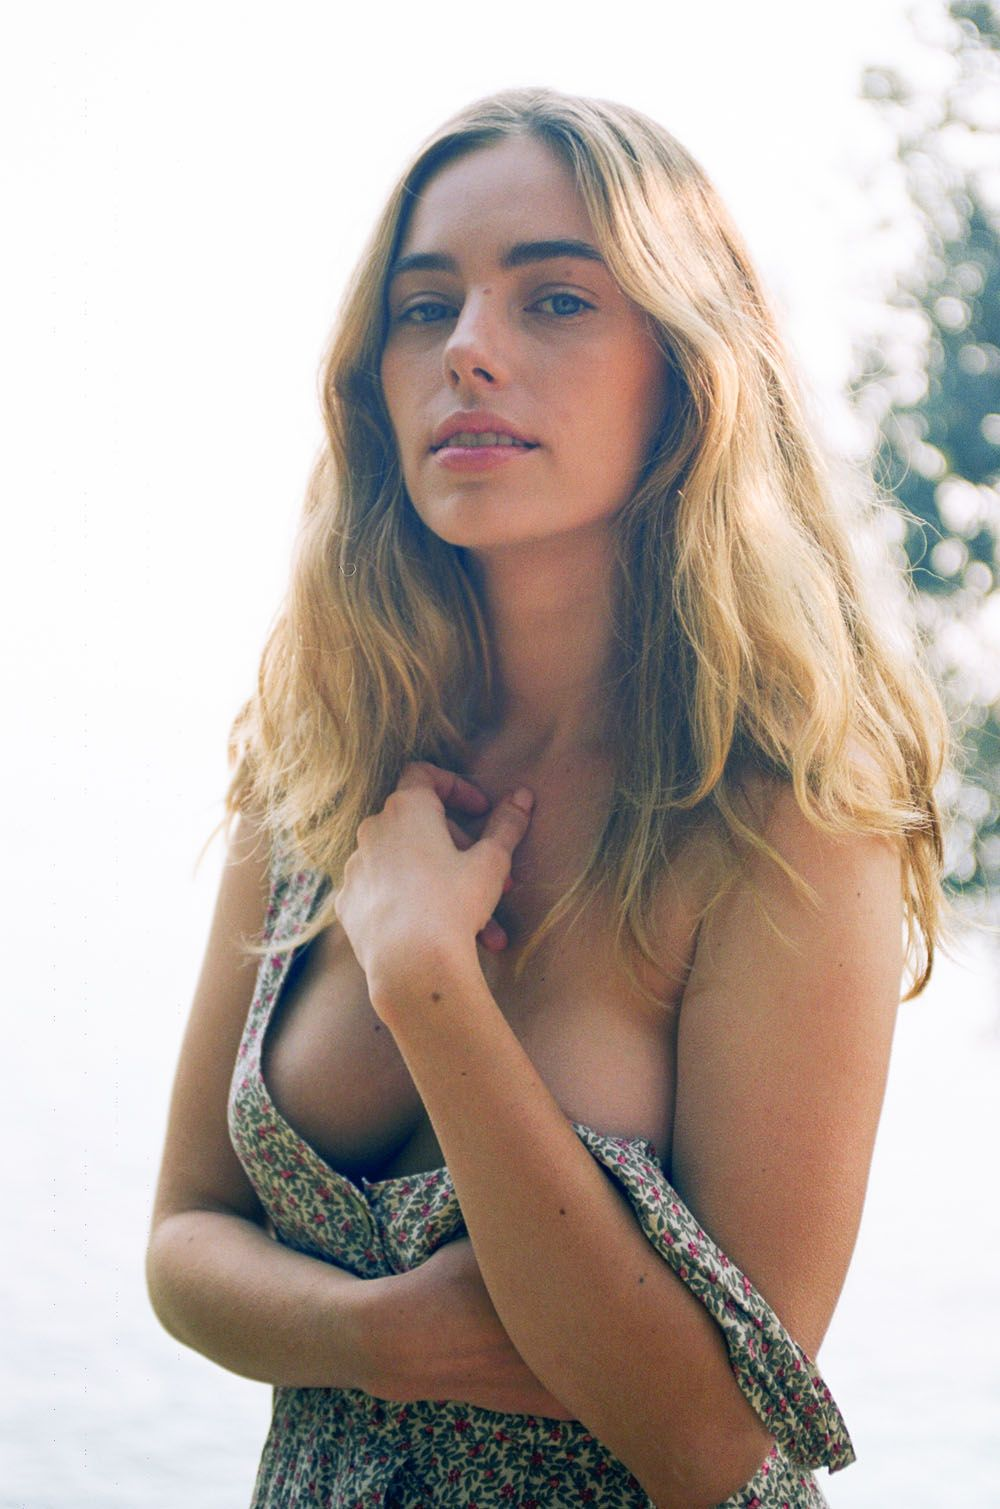 Topless Photos of Anthea Page